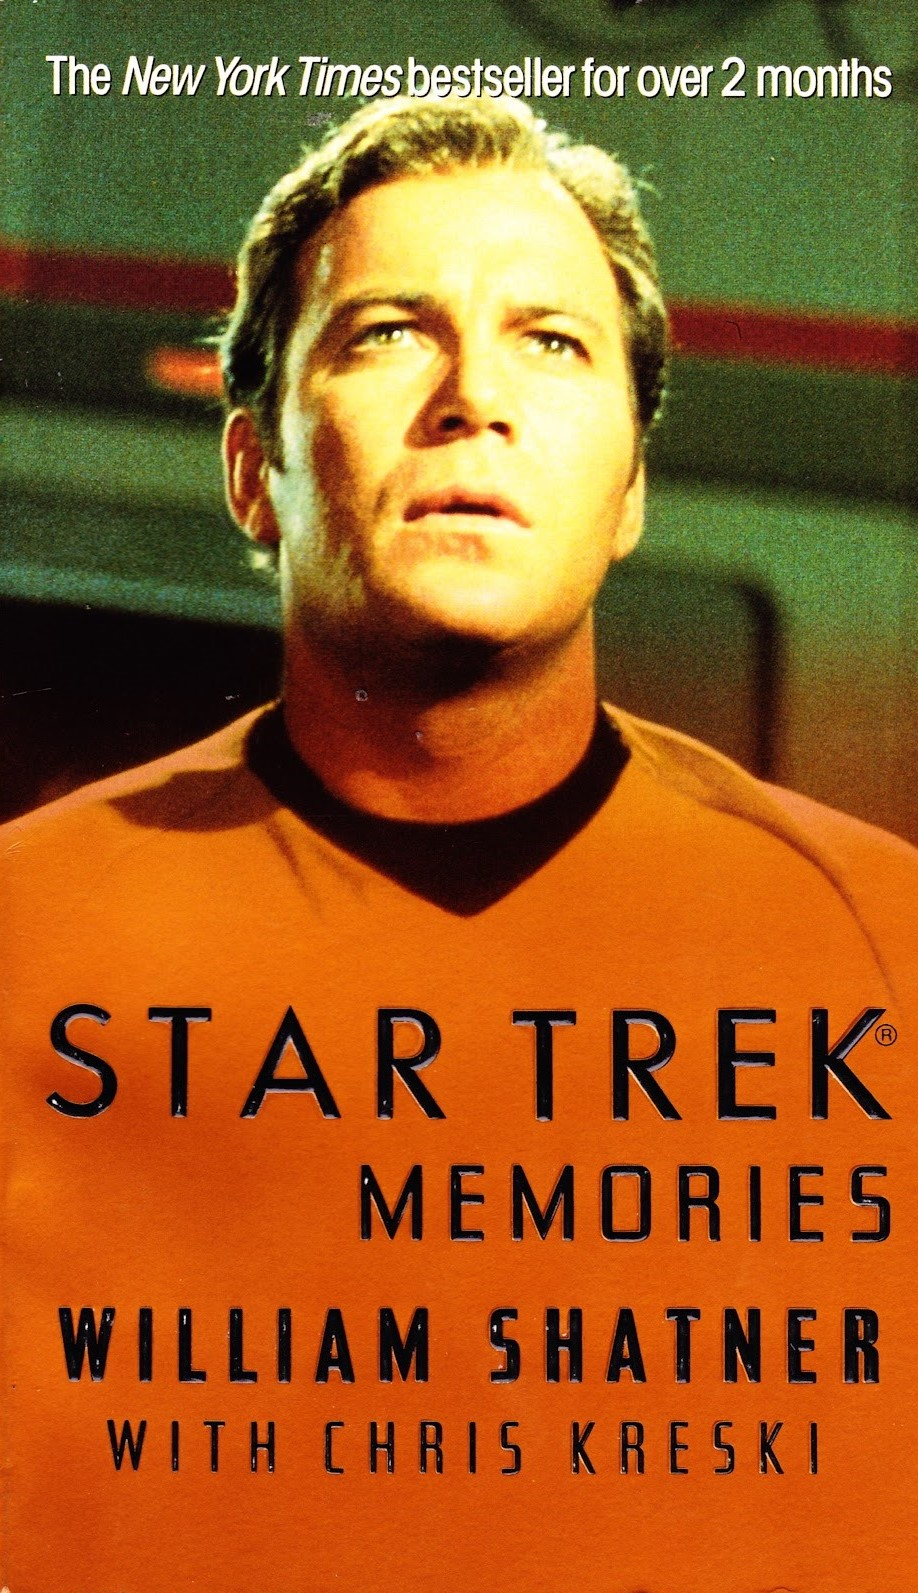 """The high-profile Shatner (see Tek Power in """"Fiction"""") follows up the  best-selling Star Trek Memories with a behind-the-scenes look at all seven Star  Trek ..."""